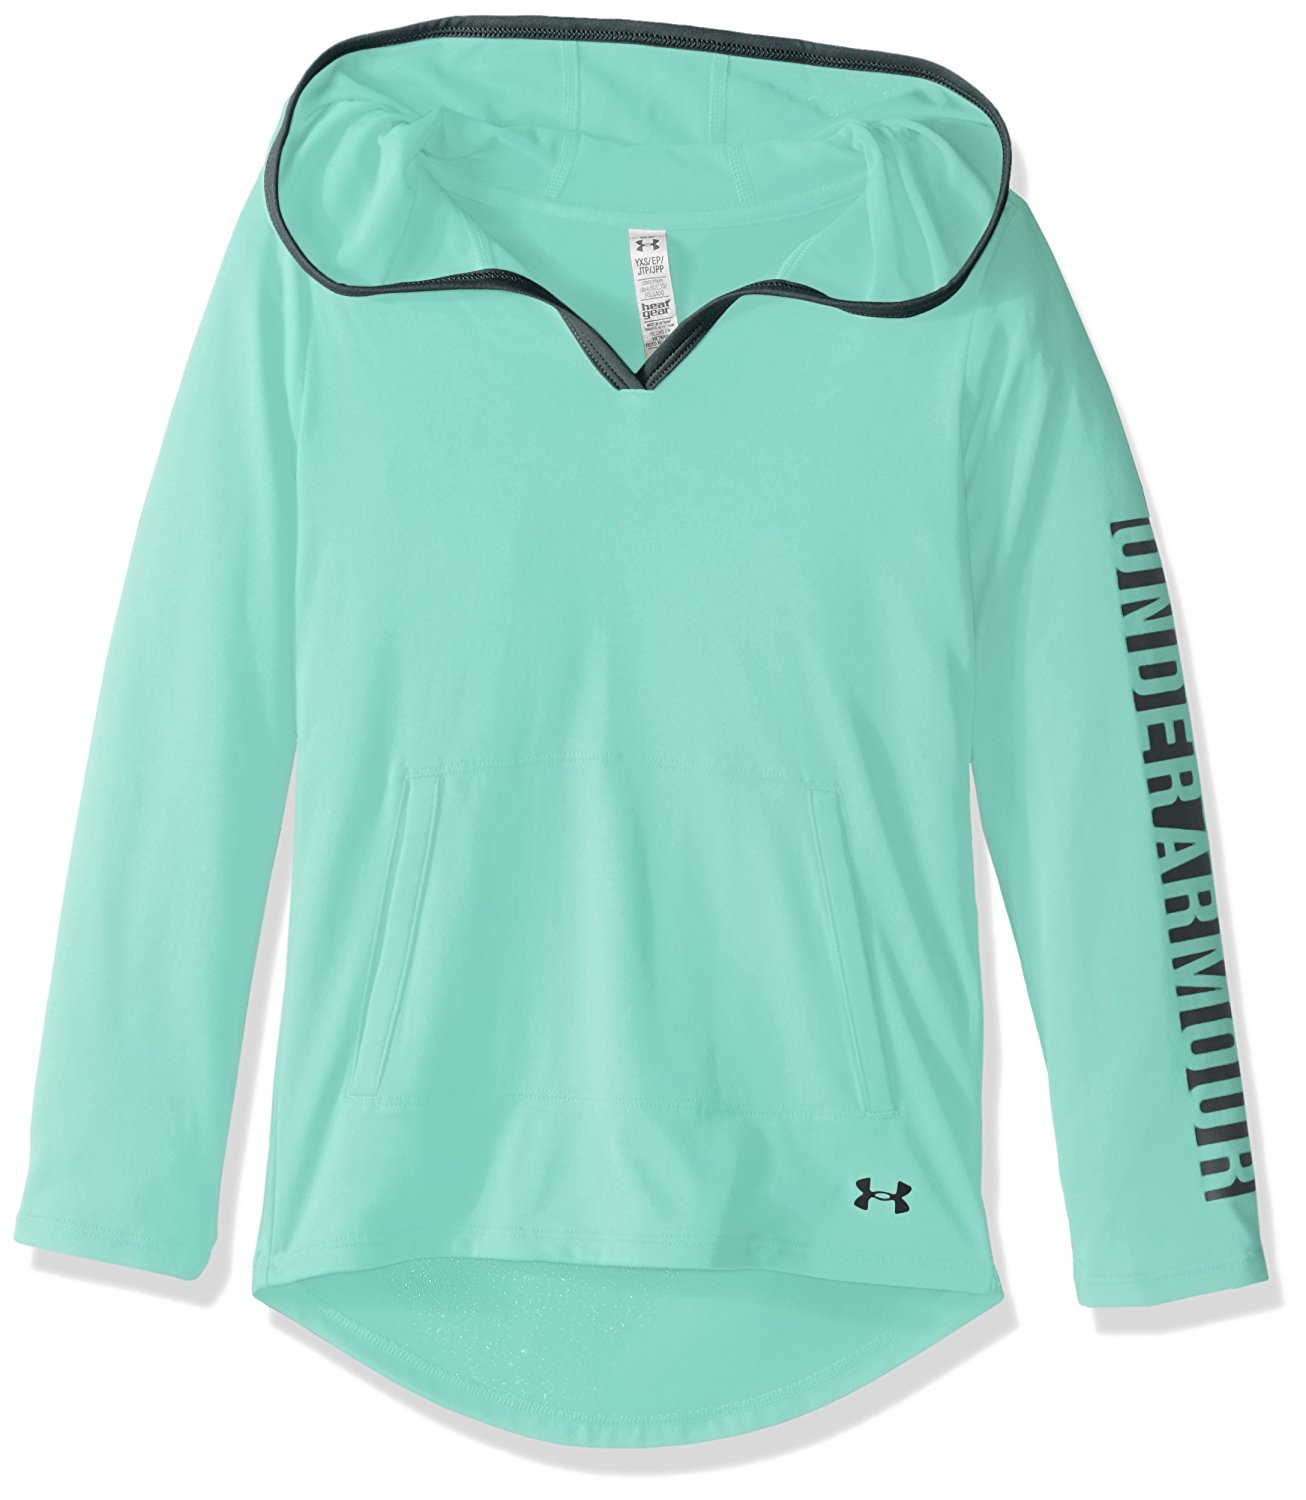 Under Armour Girls' Tech Hoodie – Available in 5 Sizes & 5 Colors